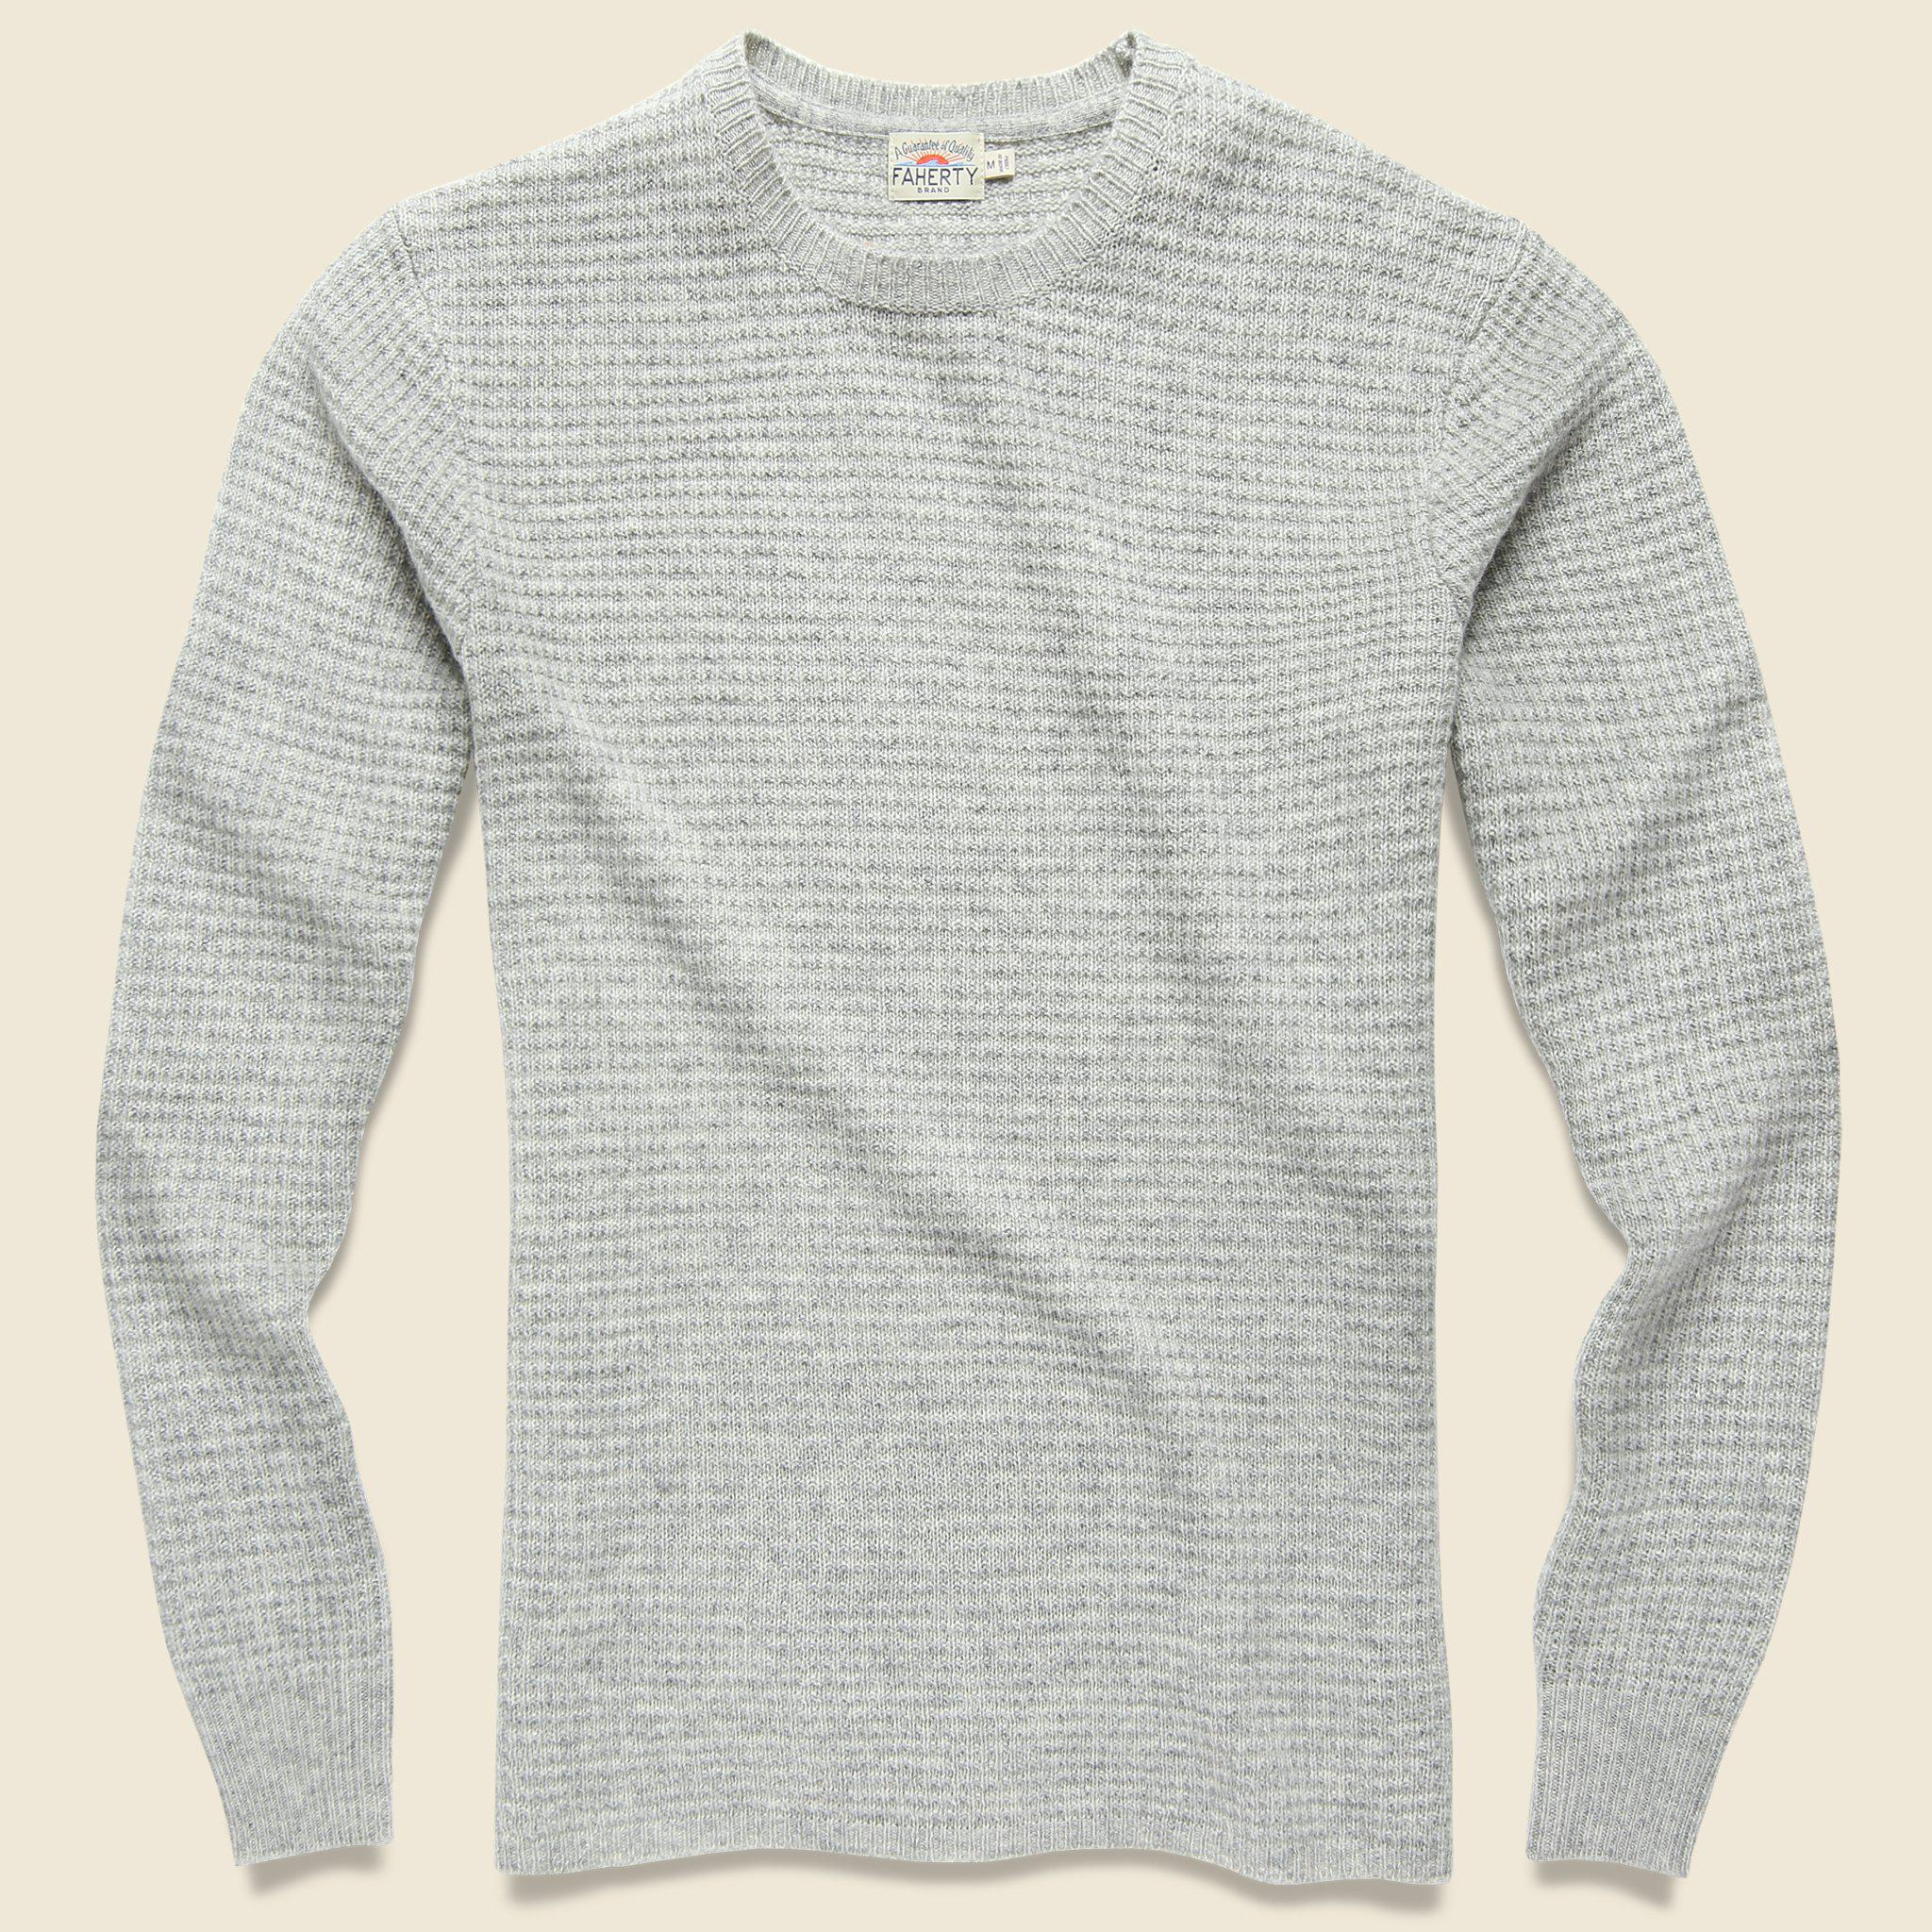 6aa99544a60b Lyst - Faherty Brand Cashmere Crewneck Sweater - Light Grey in Gray ...